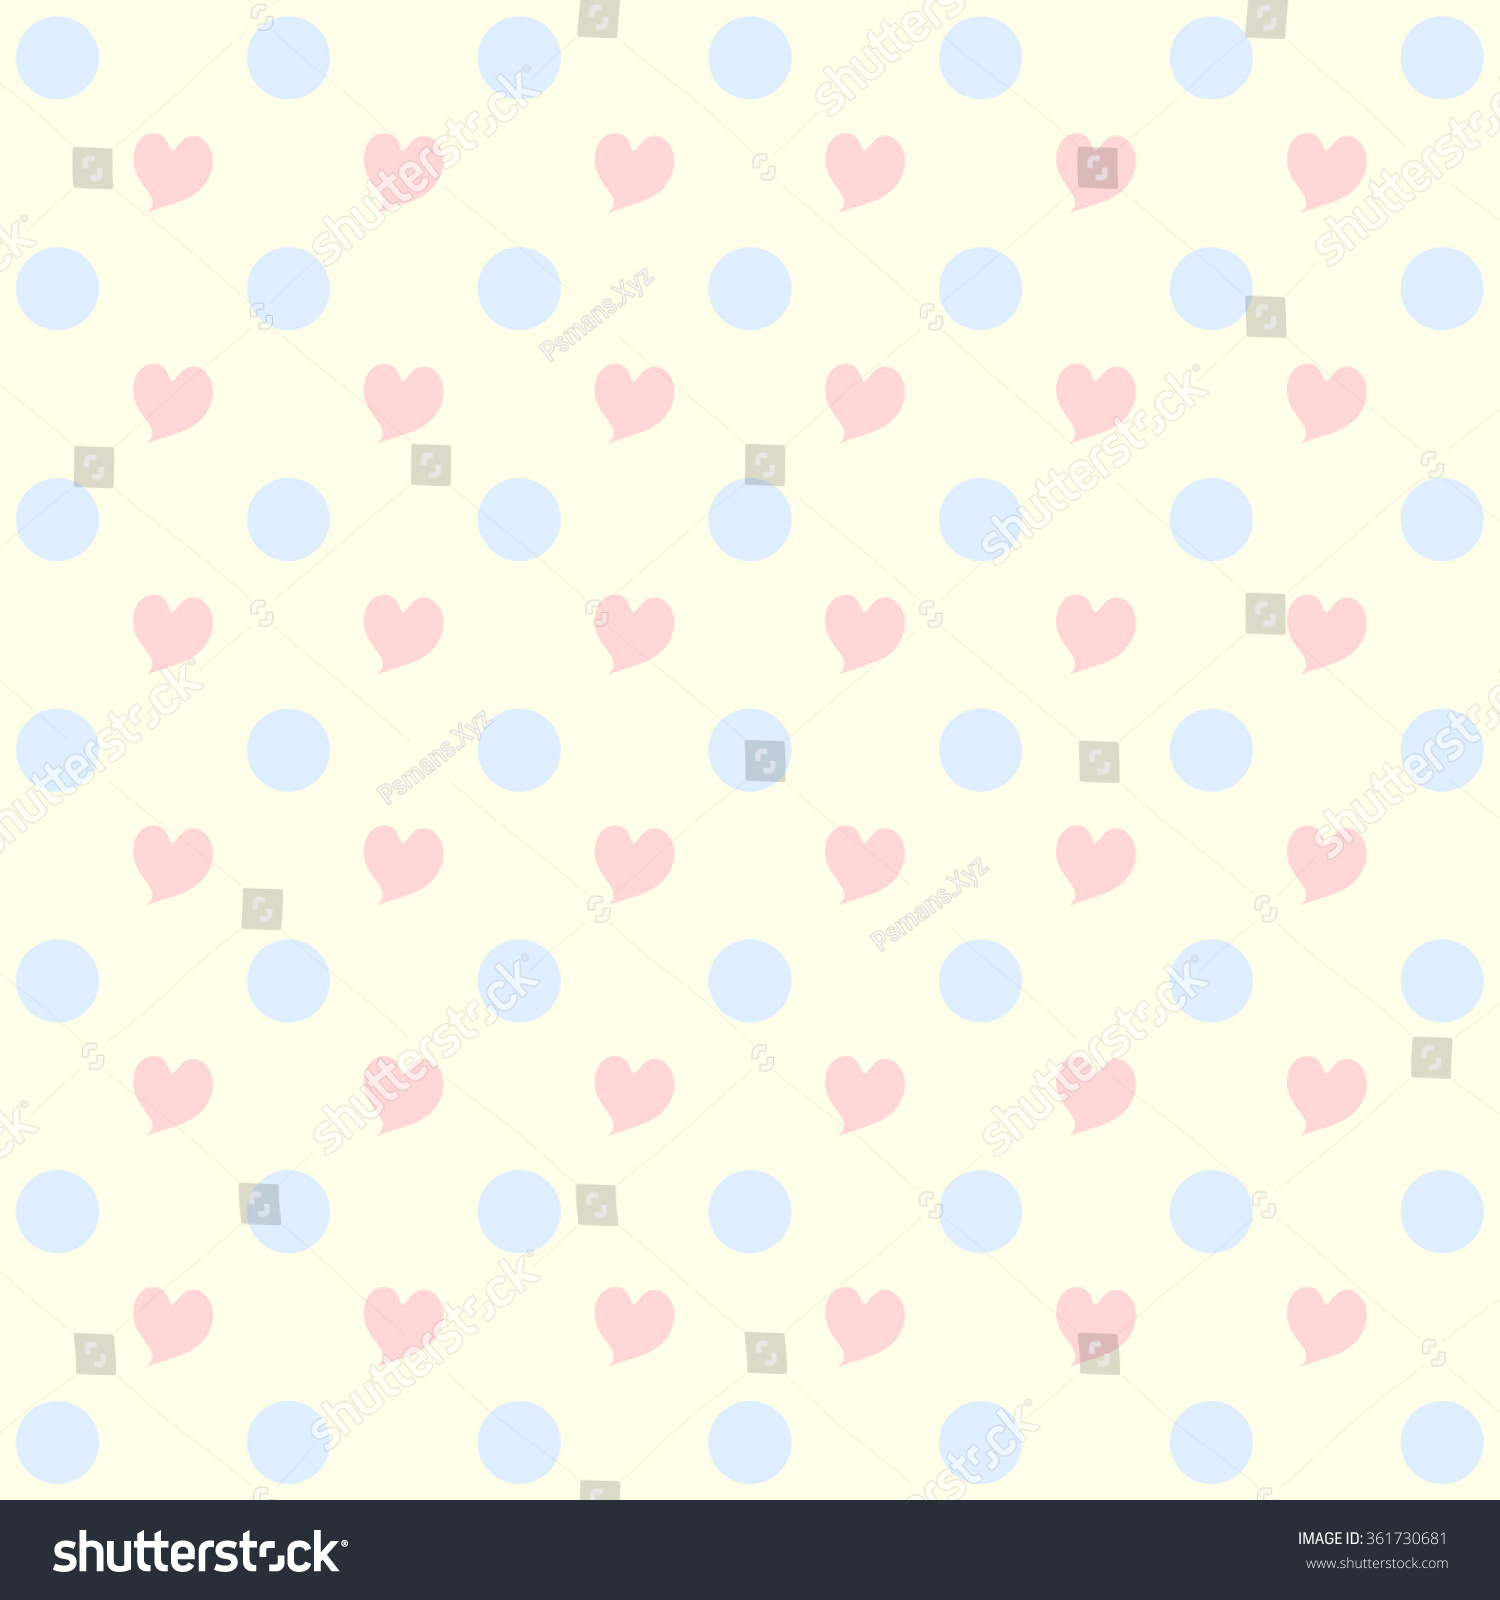 Sweet Pink Heart Pattern And Pastel Blue Dot Texture On Cream Background Wallpaper Illustration